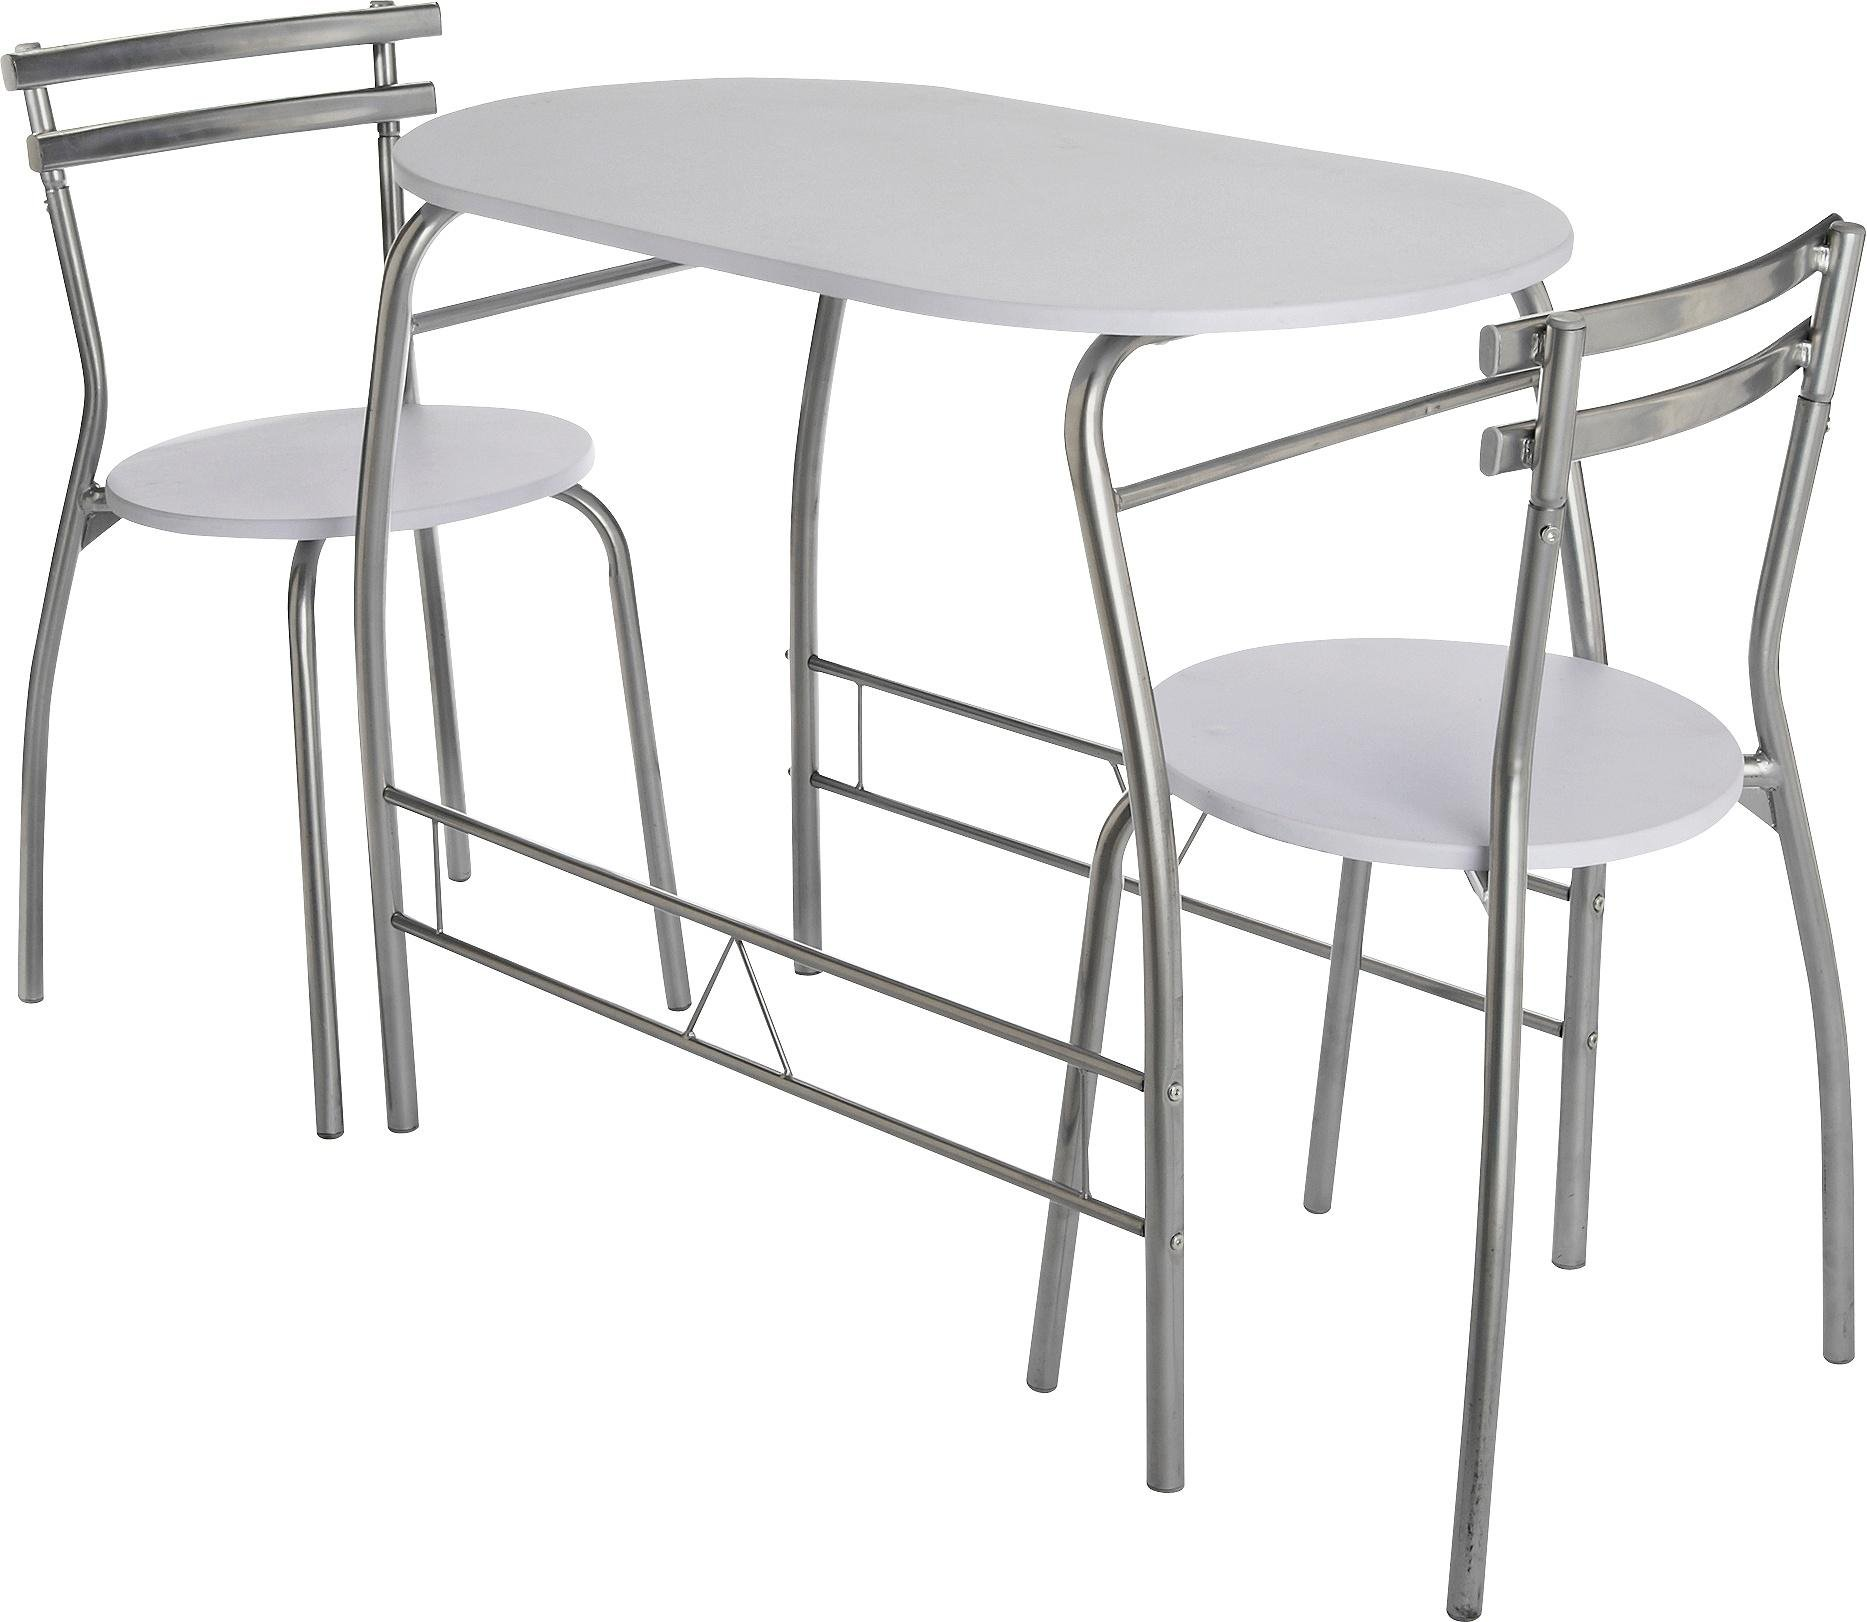 Argos Table And Chairs In Sale: SALE On HOME Vegas Dining Table & 2 Chairs